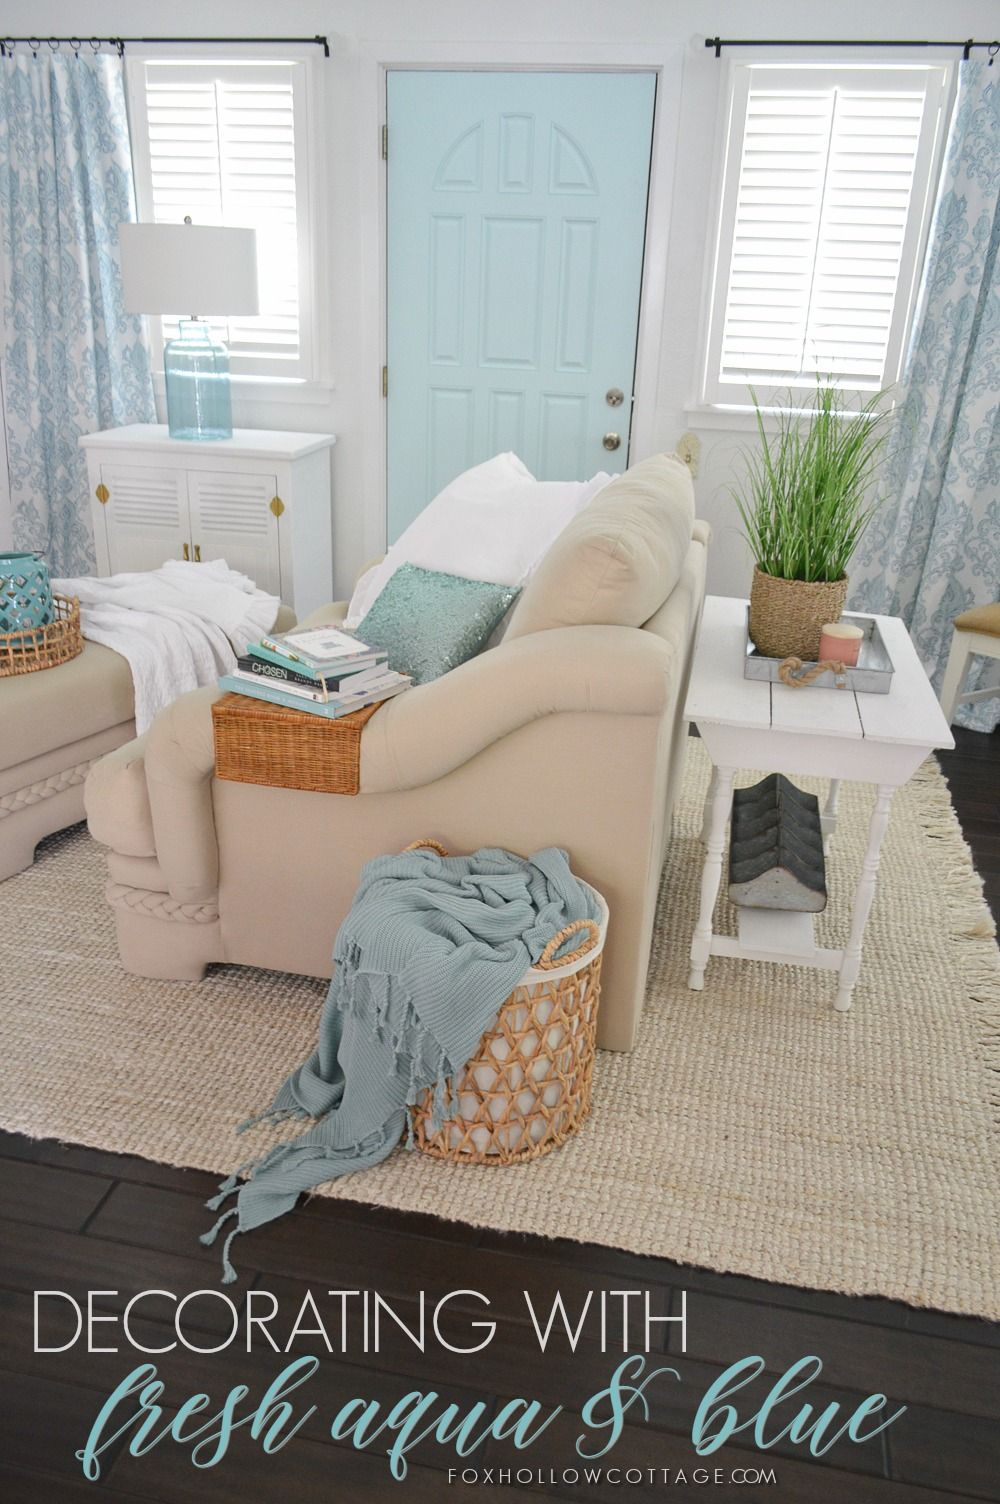 Light And Airy Aqua Blue Home Decorating Refresh With Homegoods I Paired The Freshly Painted Door Paisley Curtains A Beachy Gl Lamp